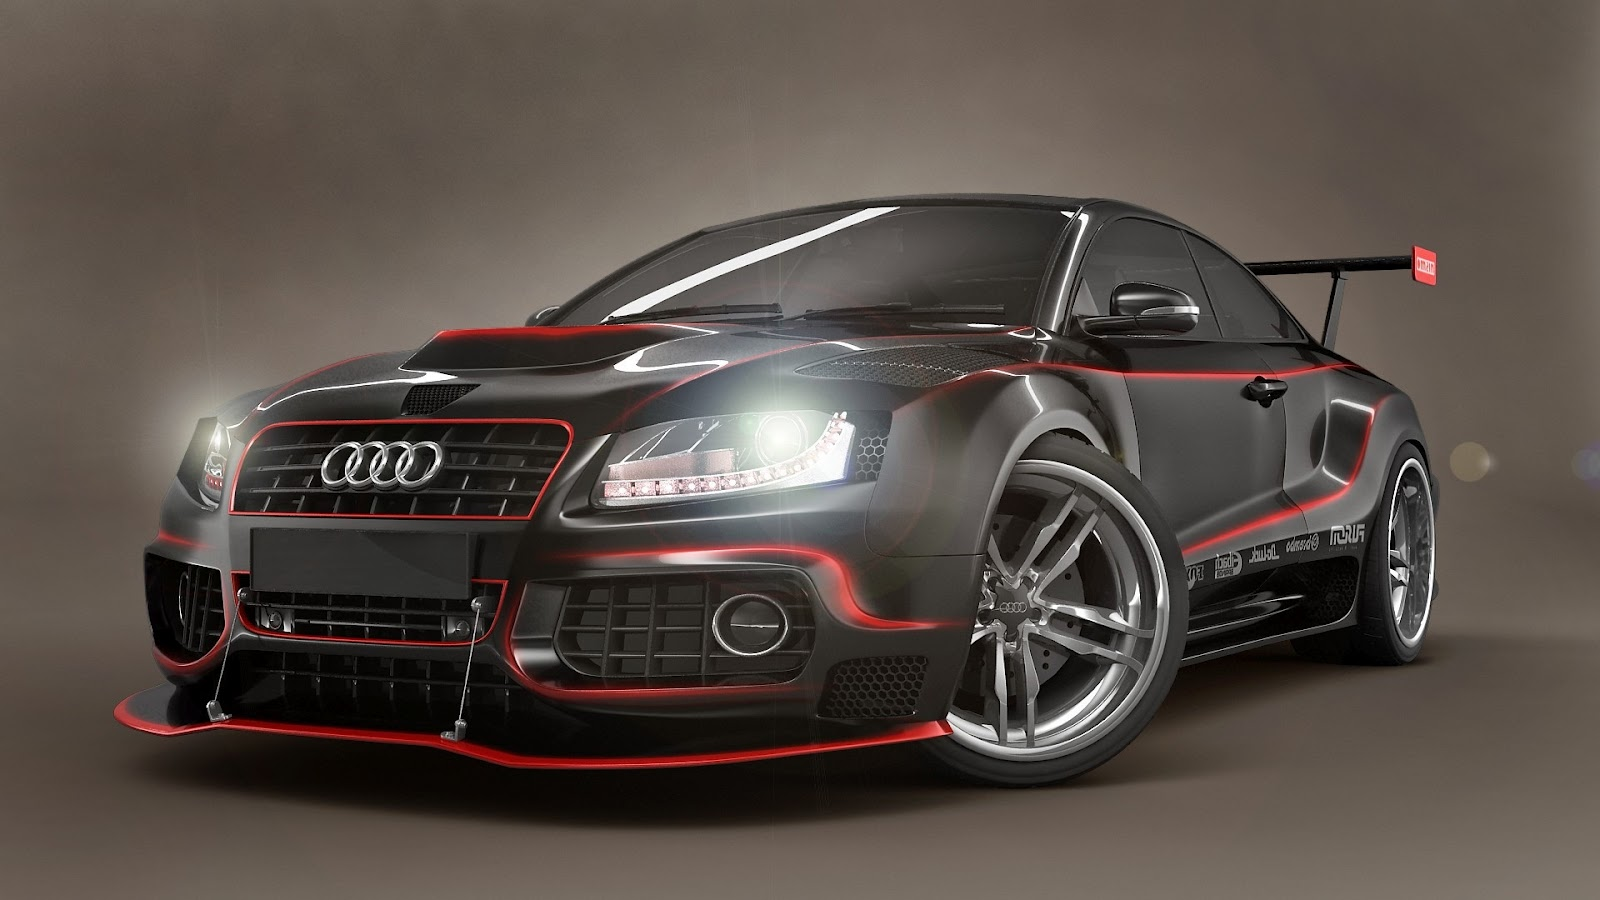 Audi Rs5 Body Kit Modified Audi s5 Body Kit